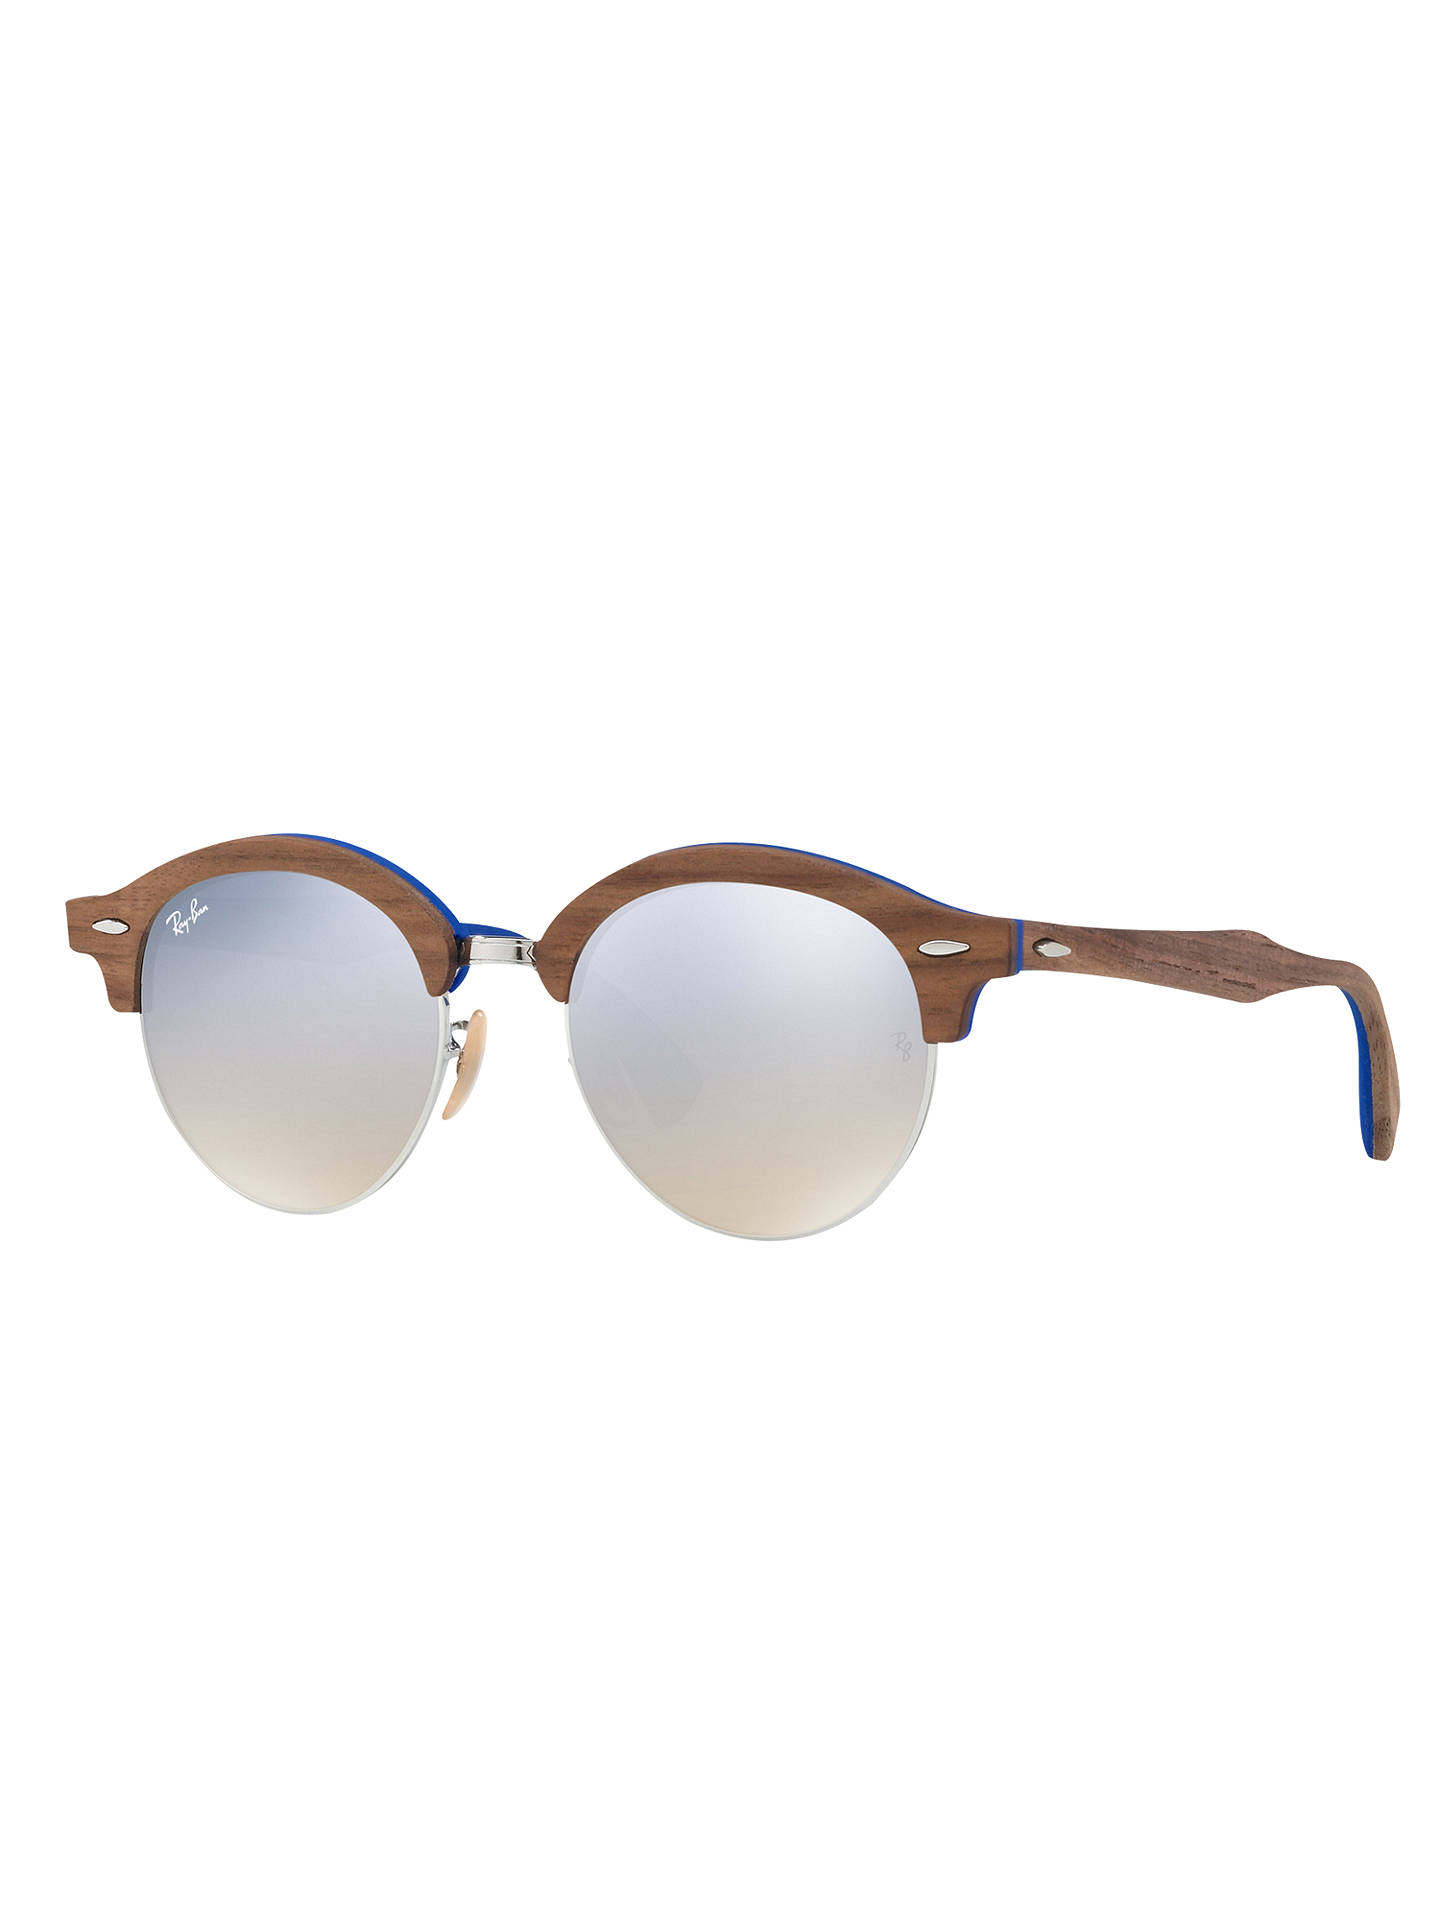 7f025655fa BuyRay-Ban RB4246M Clubround Wood Round Sunglasses